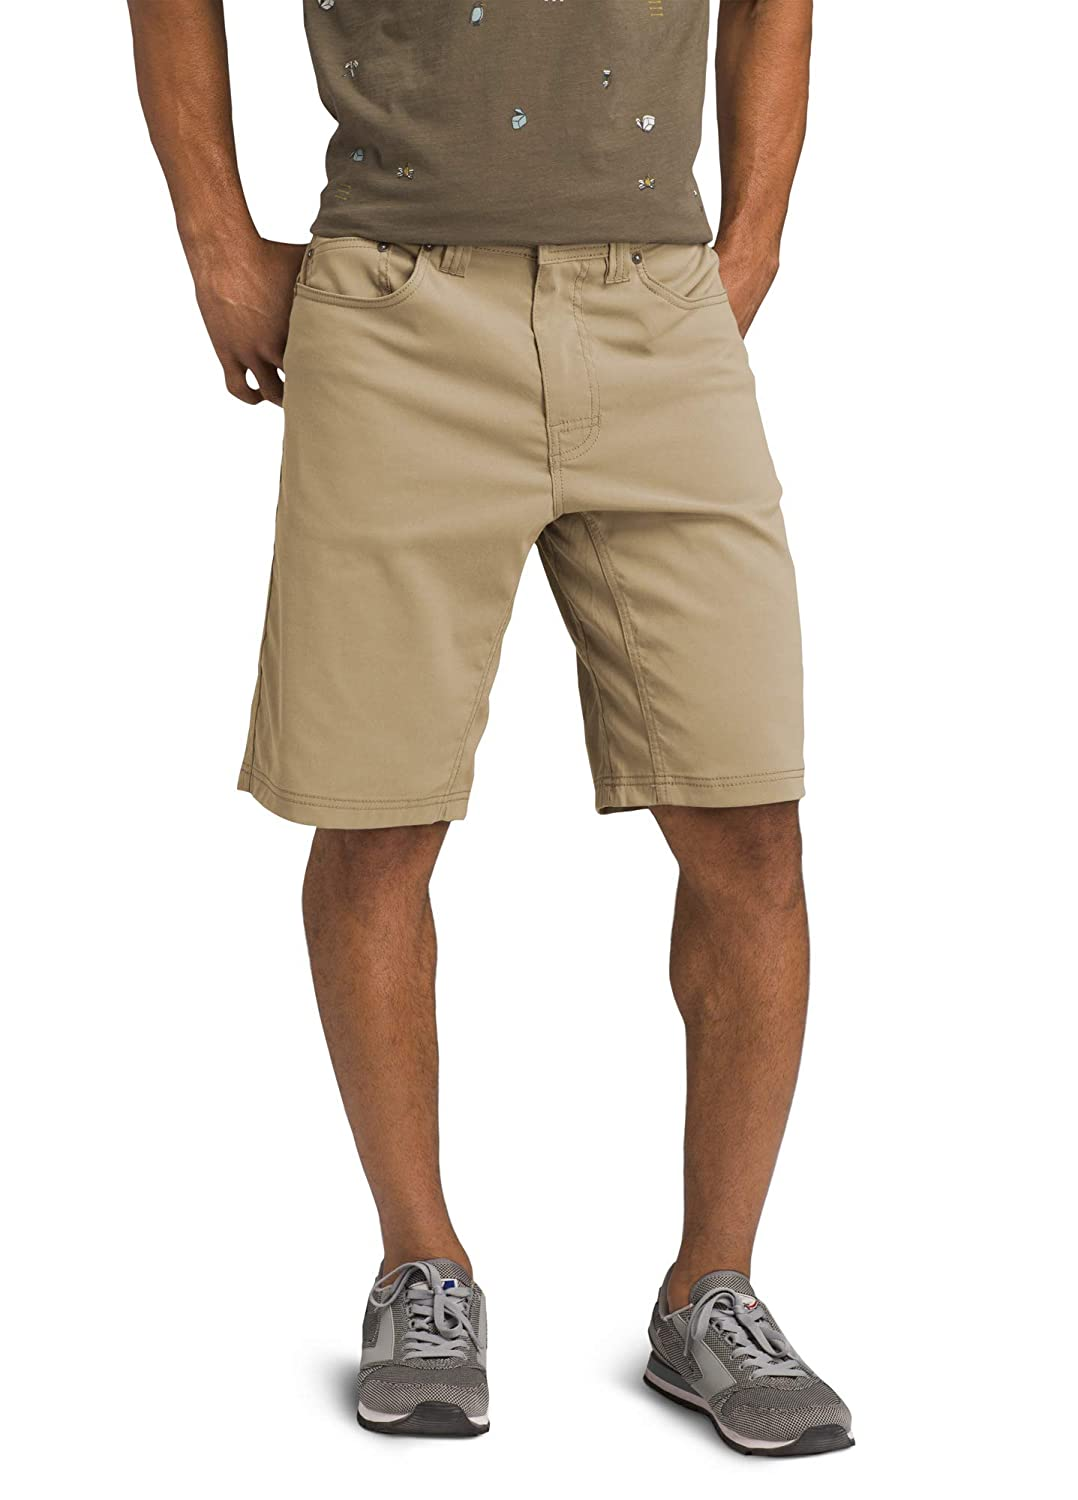 Mens Brion Lightweight Water-Repellent Moisture-Wicking Shorts for Climbing and Everyday Wear PRANA